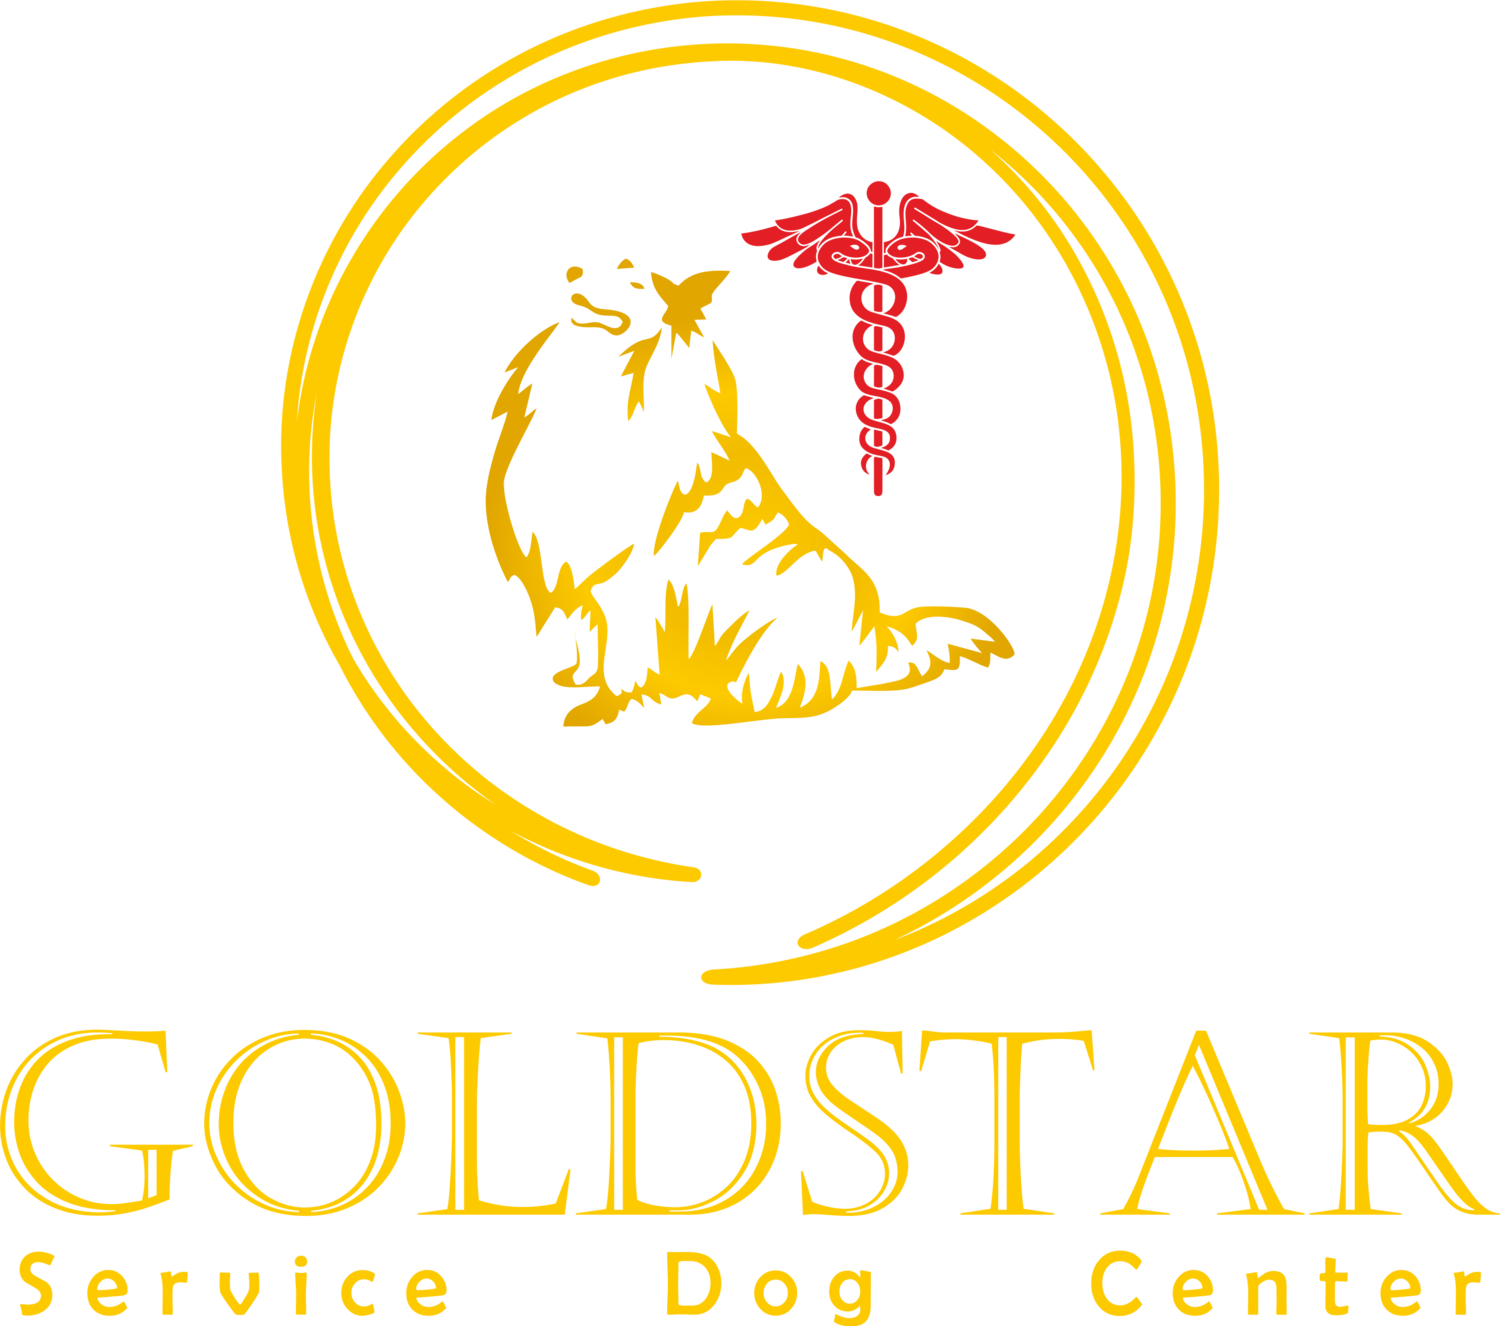 Goldstar Service Dog Center